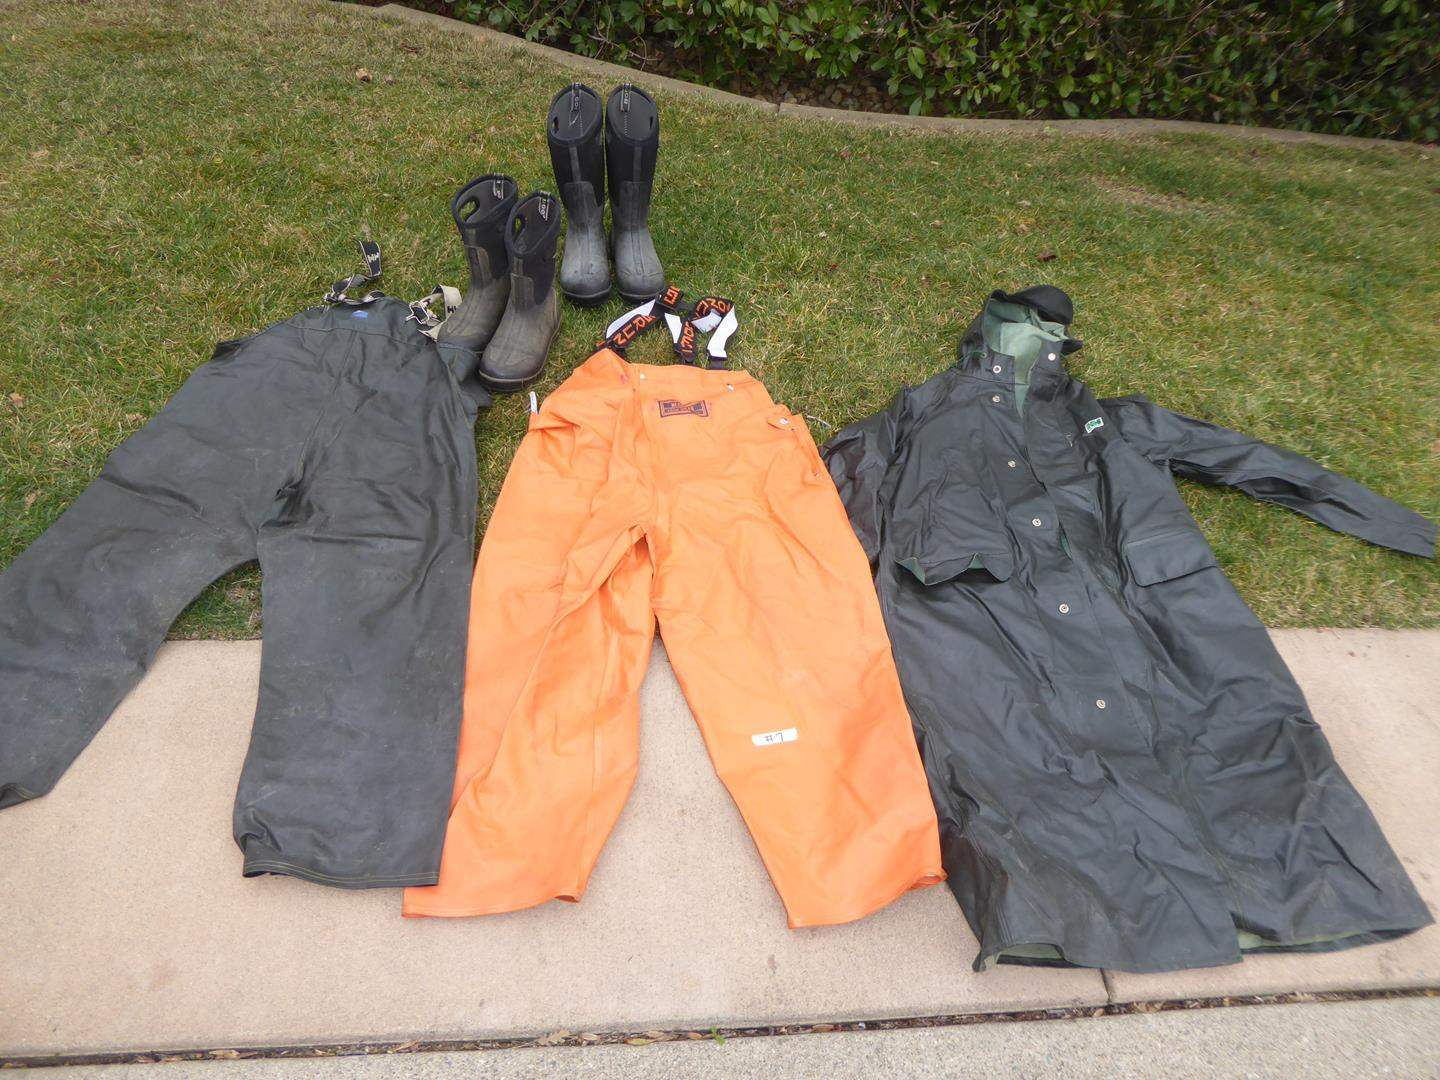 Lot # 7 - Helly Hansen and Briggs Industrial Rain Gear(Men's Size Medium)-Bogs Rain Boots (Men's size 8)  (main image)